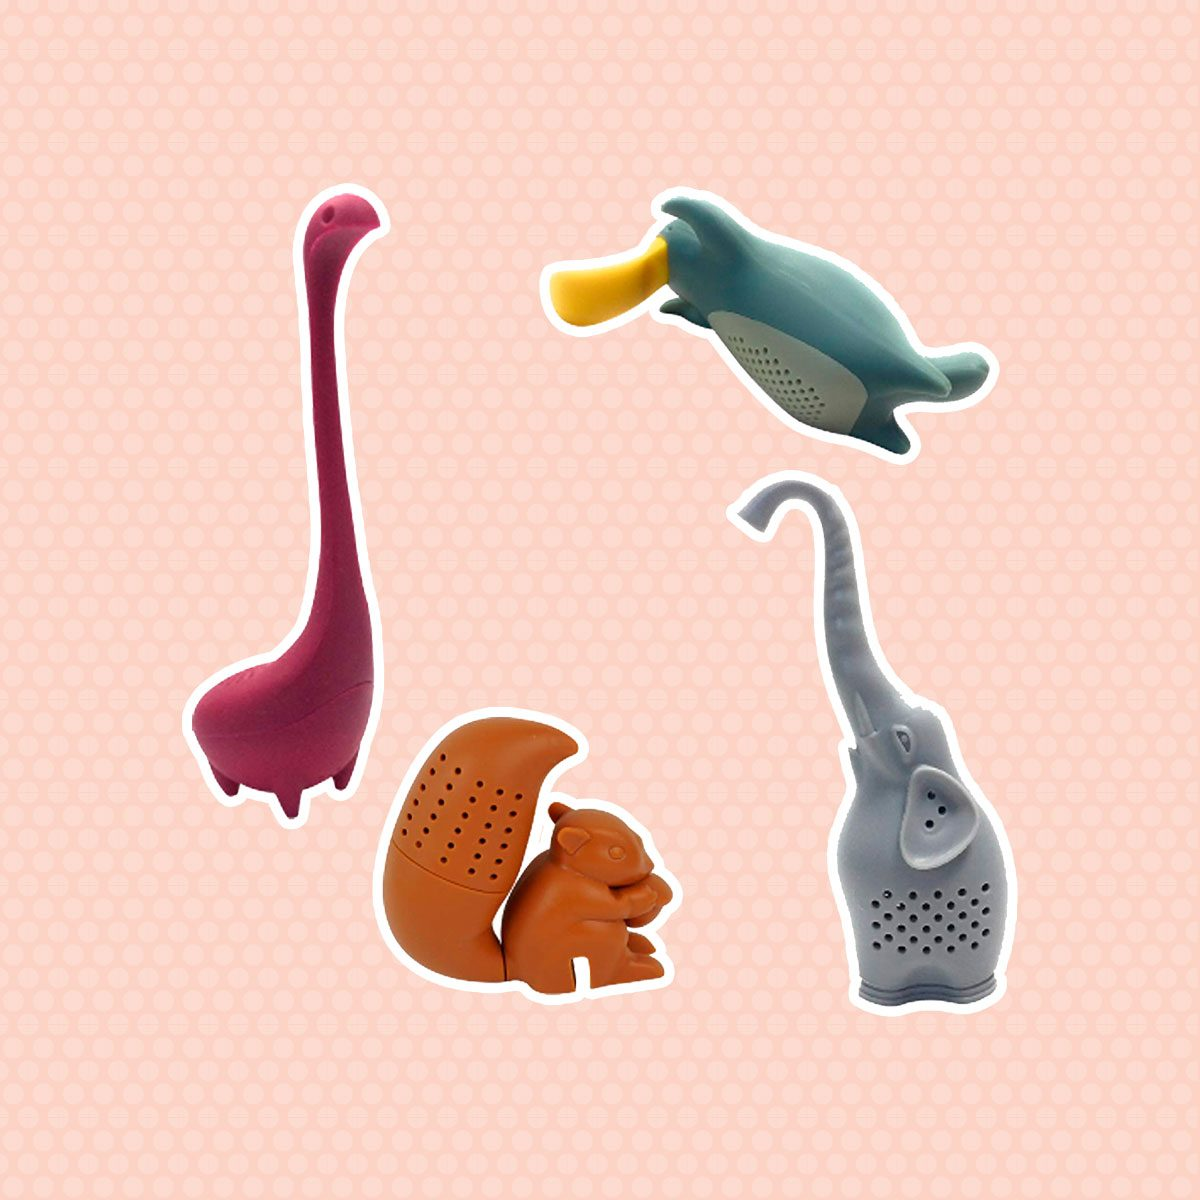 Animal-Shaped Silicone Tea Infusers